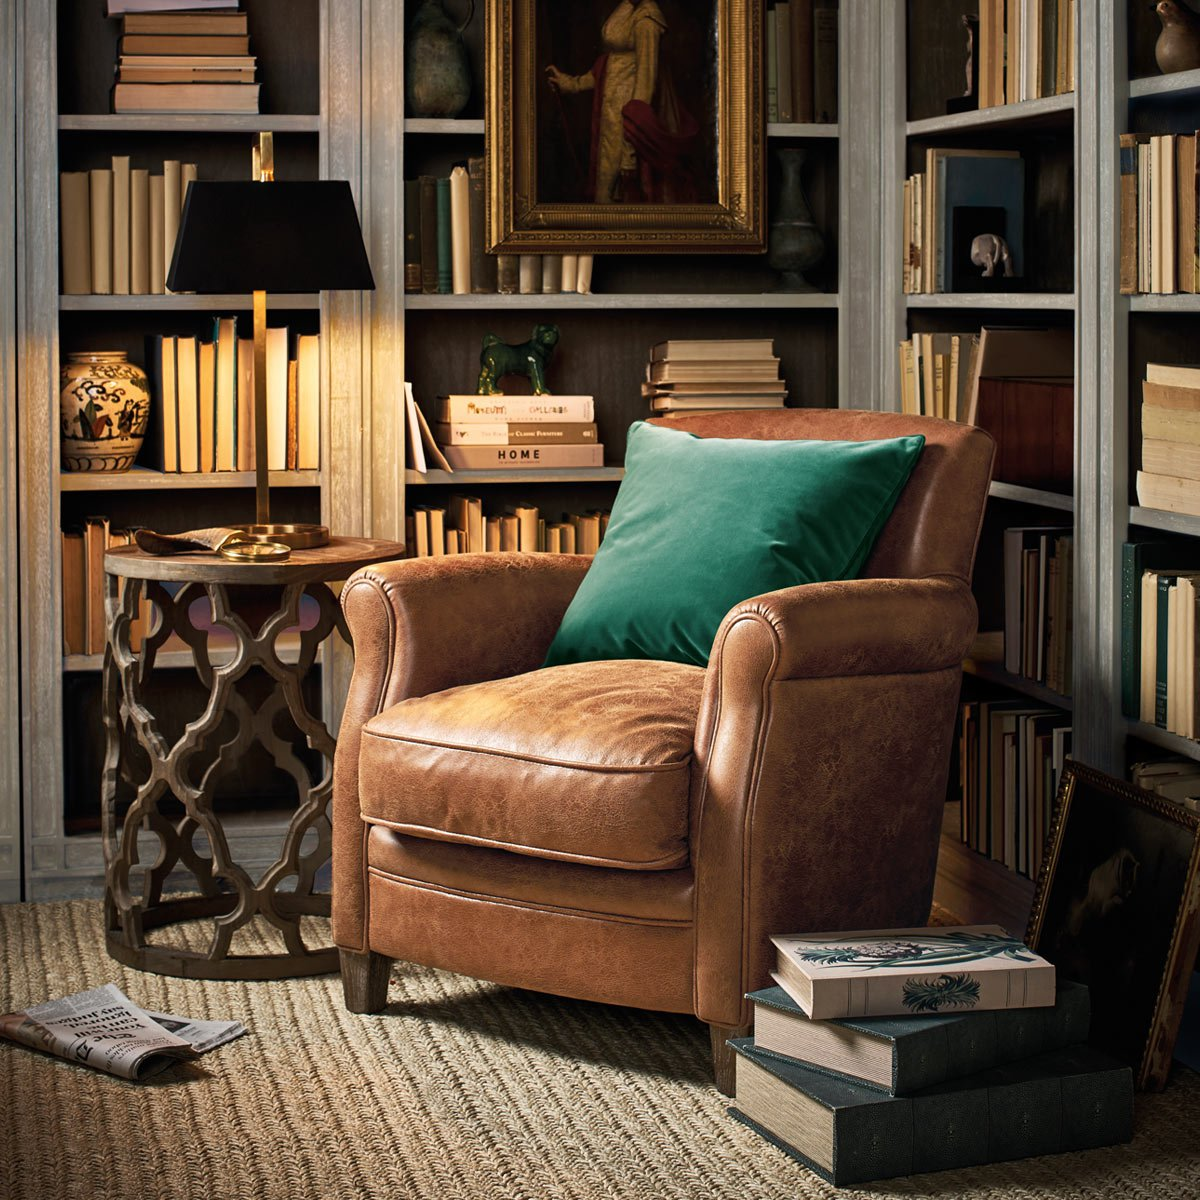 20 Reading Chairs That Will Help You Get Lost In Your Favourite Book reading chairs 20 Reading Chairs That Will Help You Get Lost In Your Favourite Book 20 Reading Chairs That Will Help You Get Lost In Your Favourite Book 4